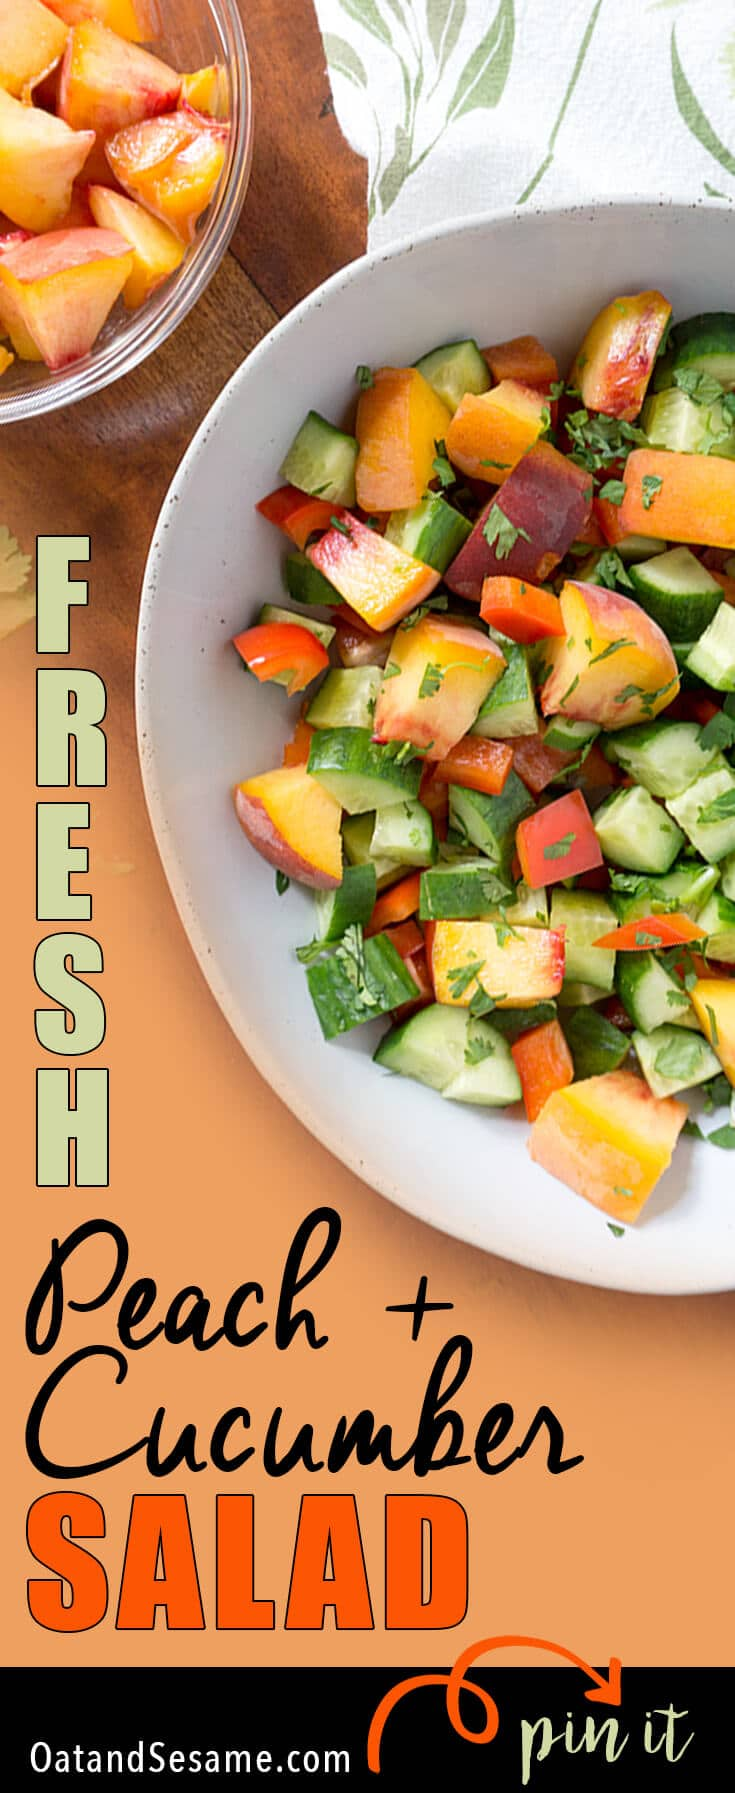 This easy Peach + Cucumber Salad incorporates all the wonderful produce from your local farmer's market! Fresh cucumbers, red peppers, peaches and fresh herbs! Summer flavors that speak for themselves without any fuss. | #GLUTENFREE | #VEGETARIAN | #VEGAN | #PLANTBASED | #PEACHES | #SALAD | #HEALTHY | #Recipes at OatandSesame.com